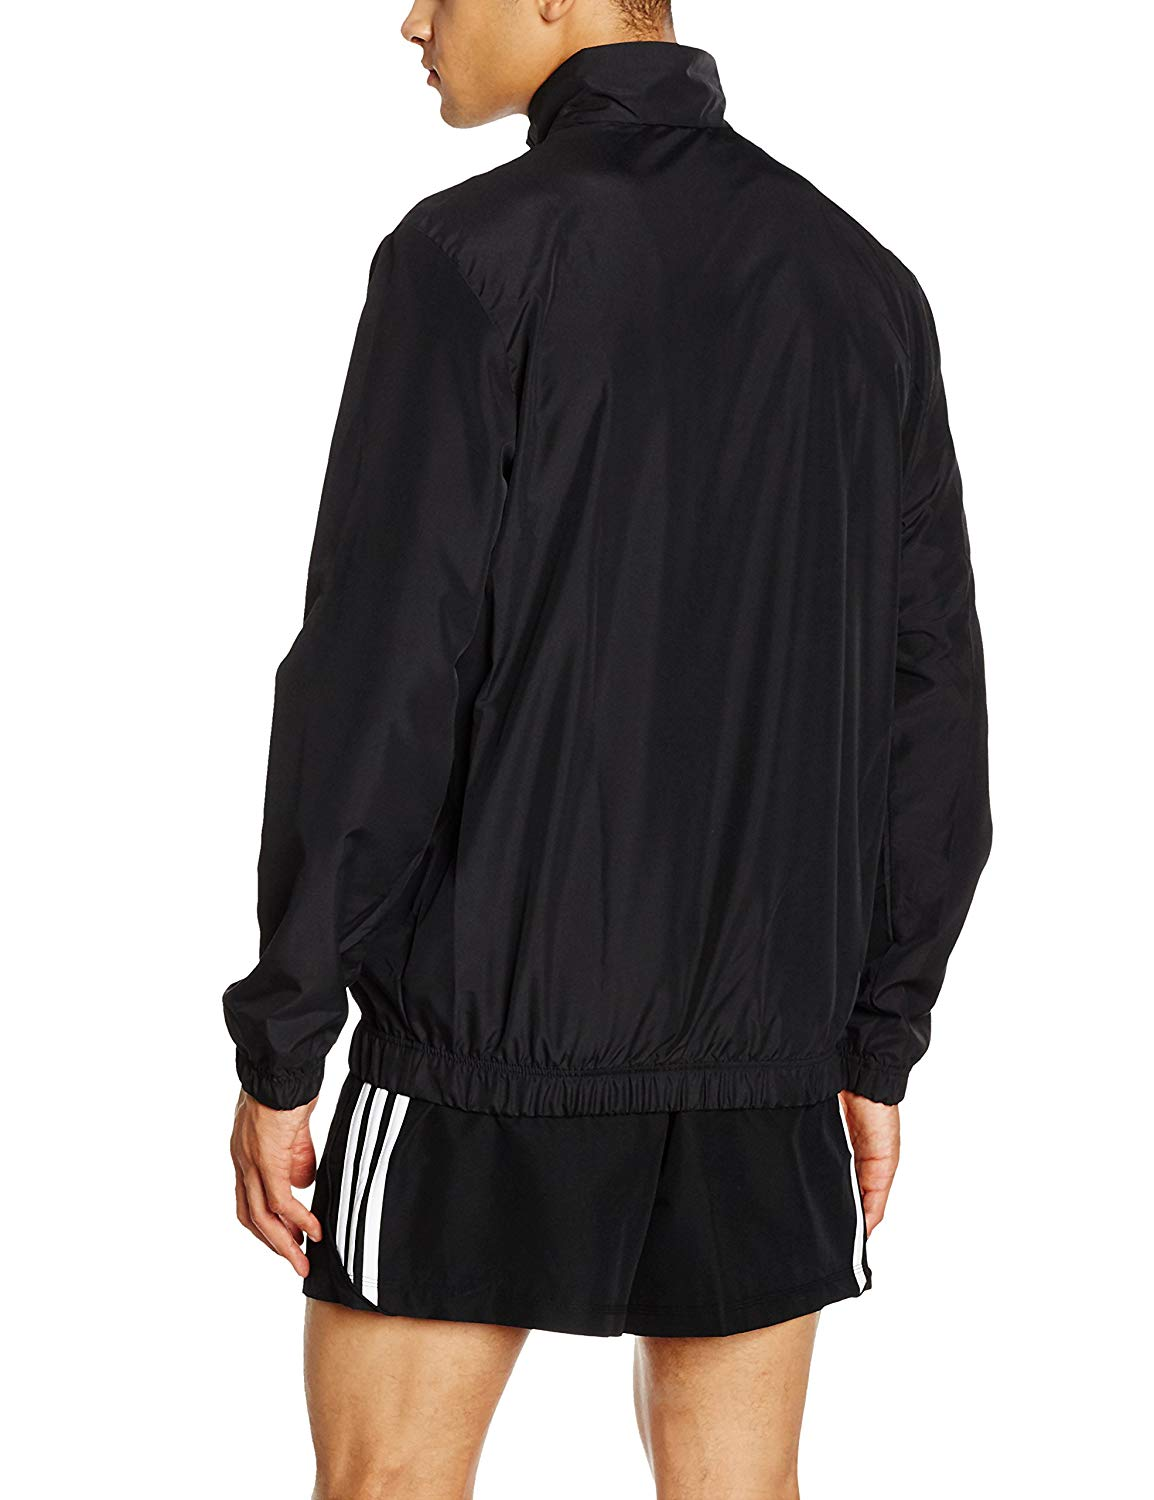 Adidas Men's Core Windbreaker Jacket Black